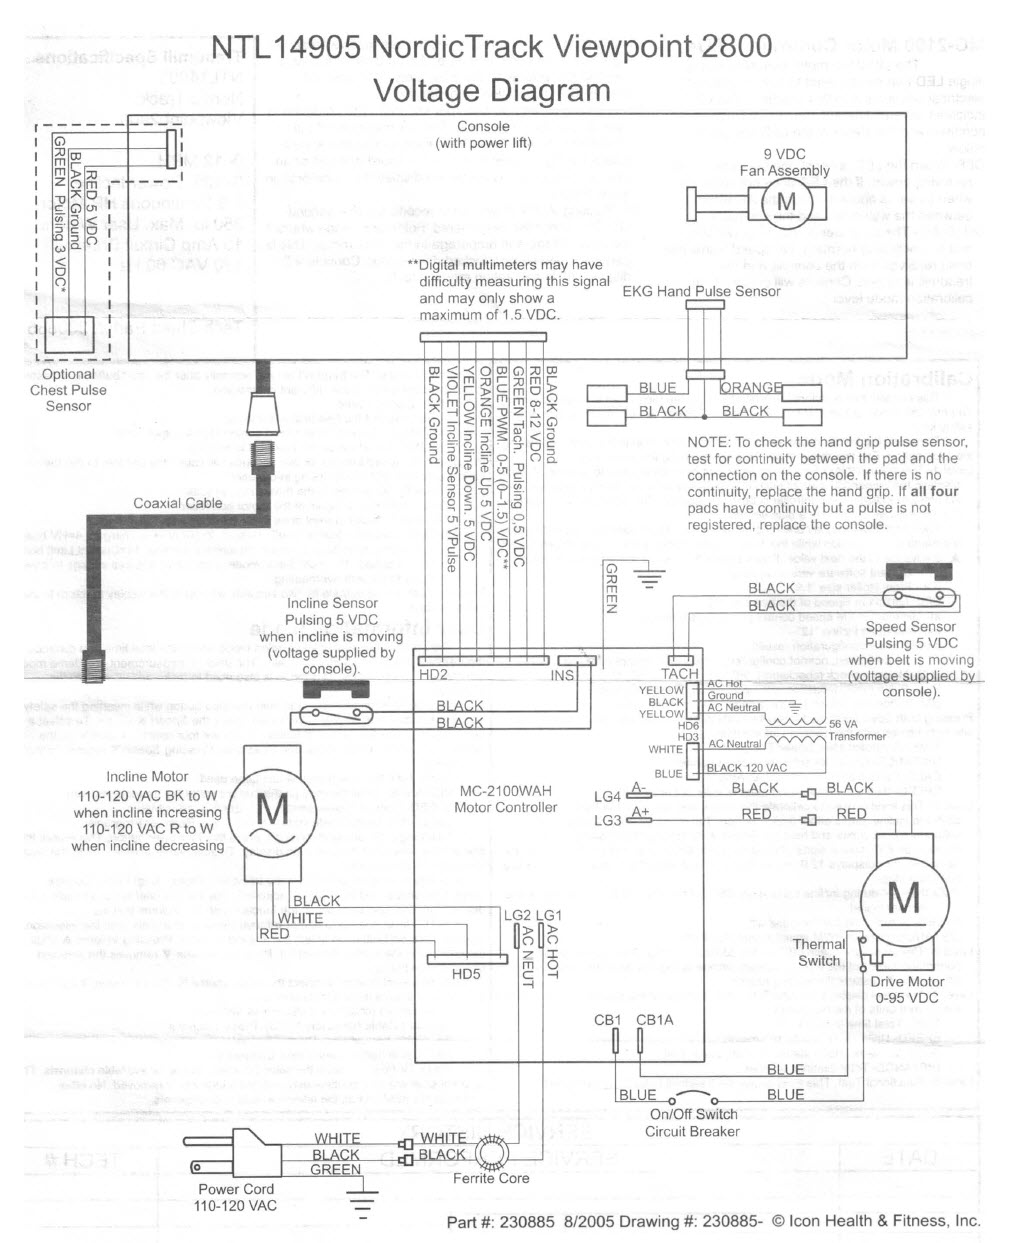 hight resolution of voltage diagram that came with the nordictrack viewpoint 2800 treadmill